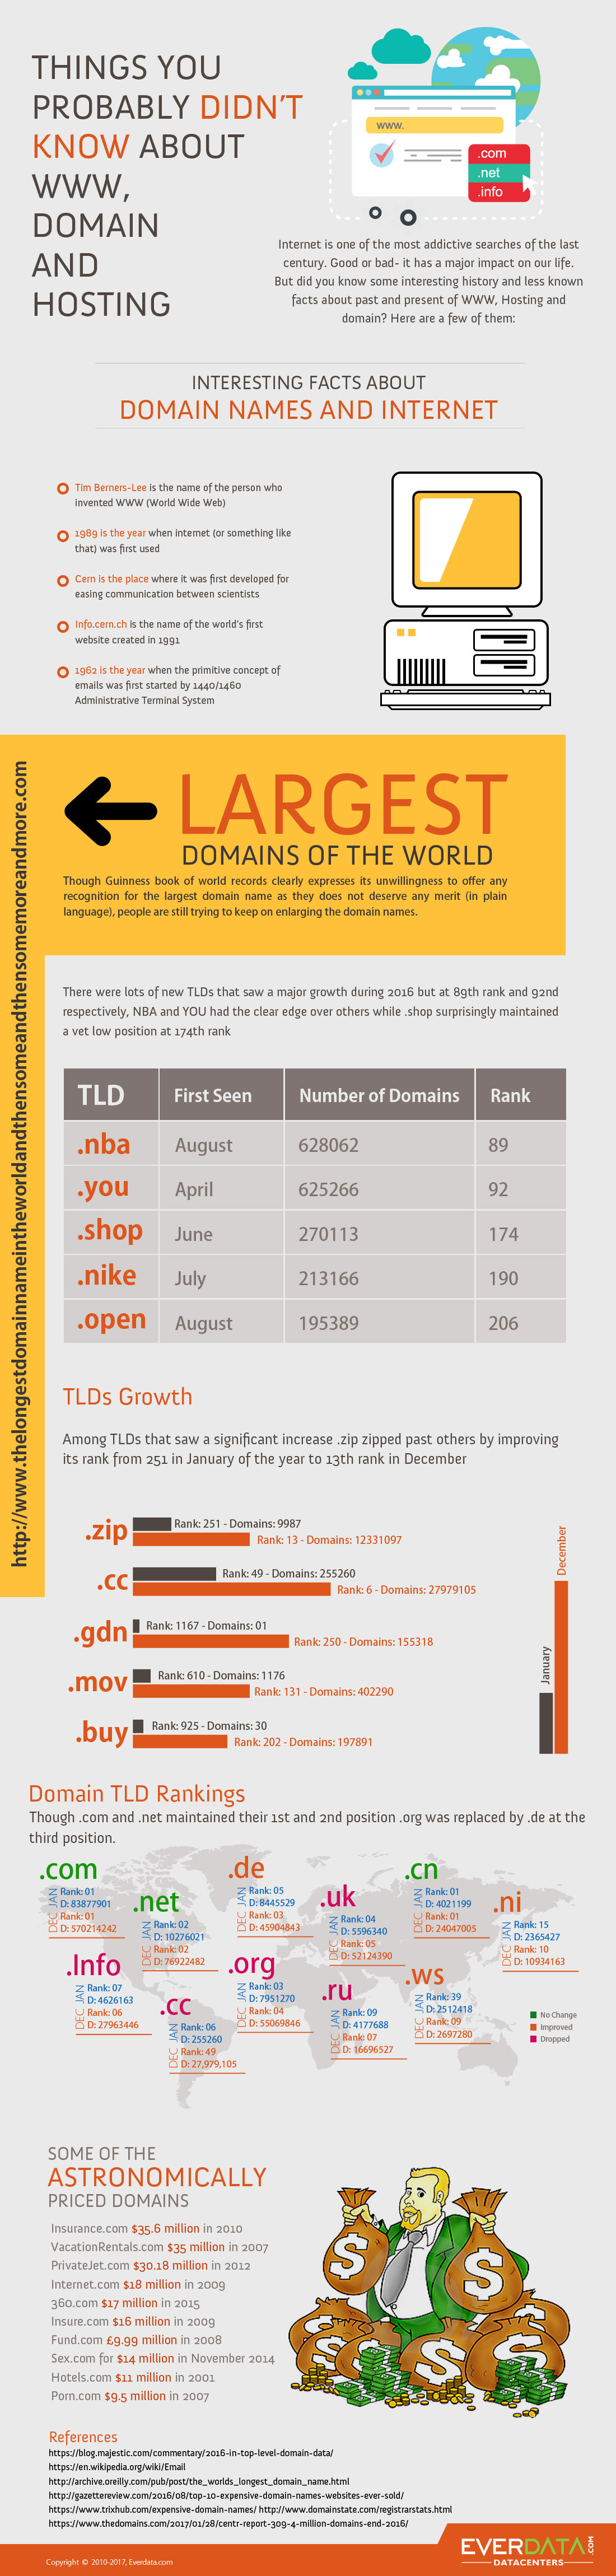 Domain and Hosting Facts [Infographic]